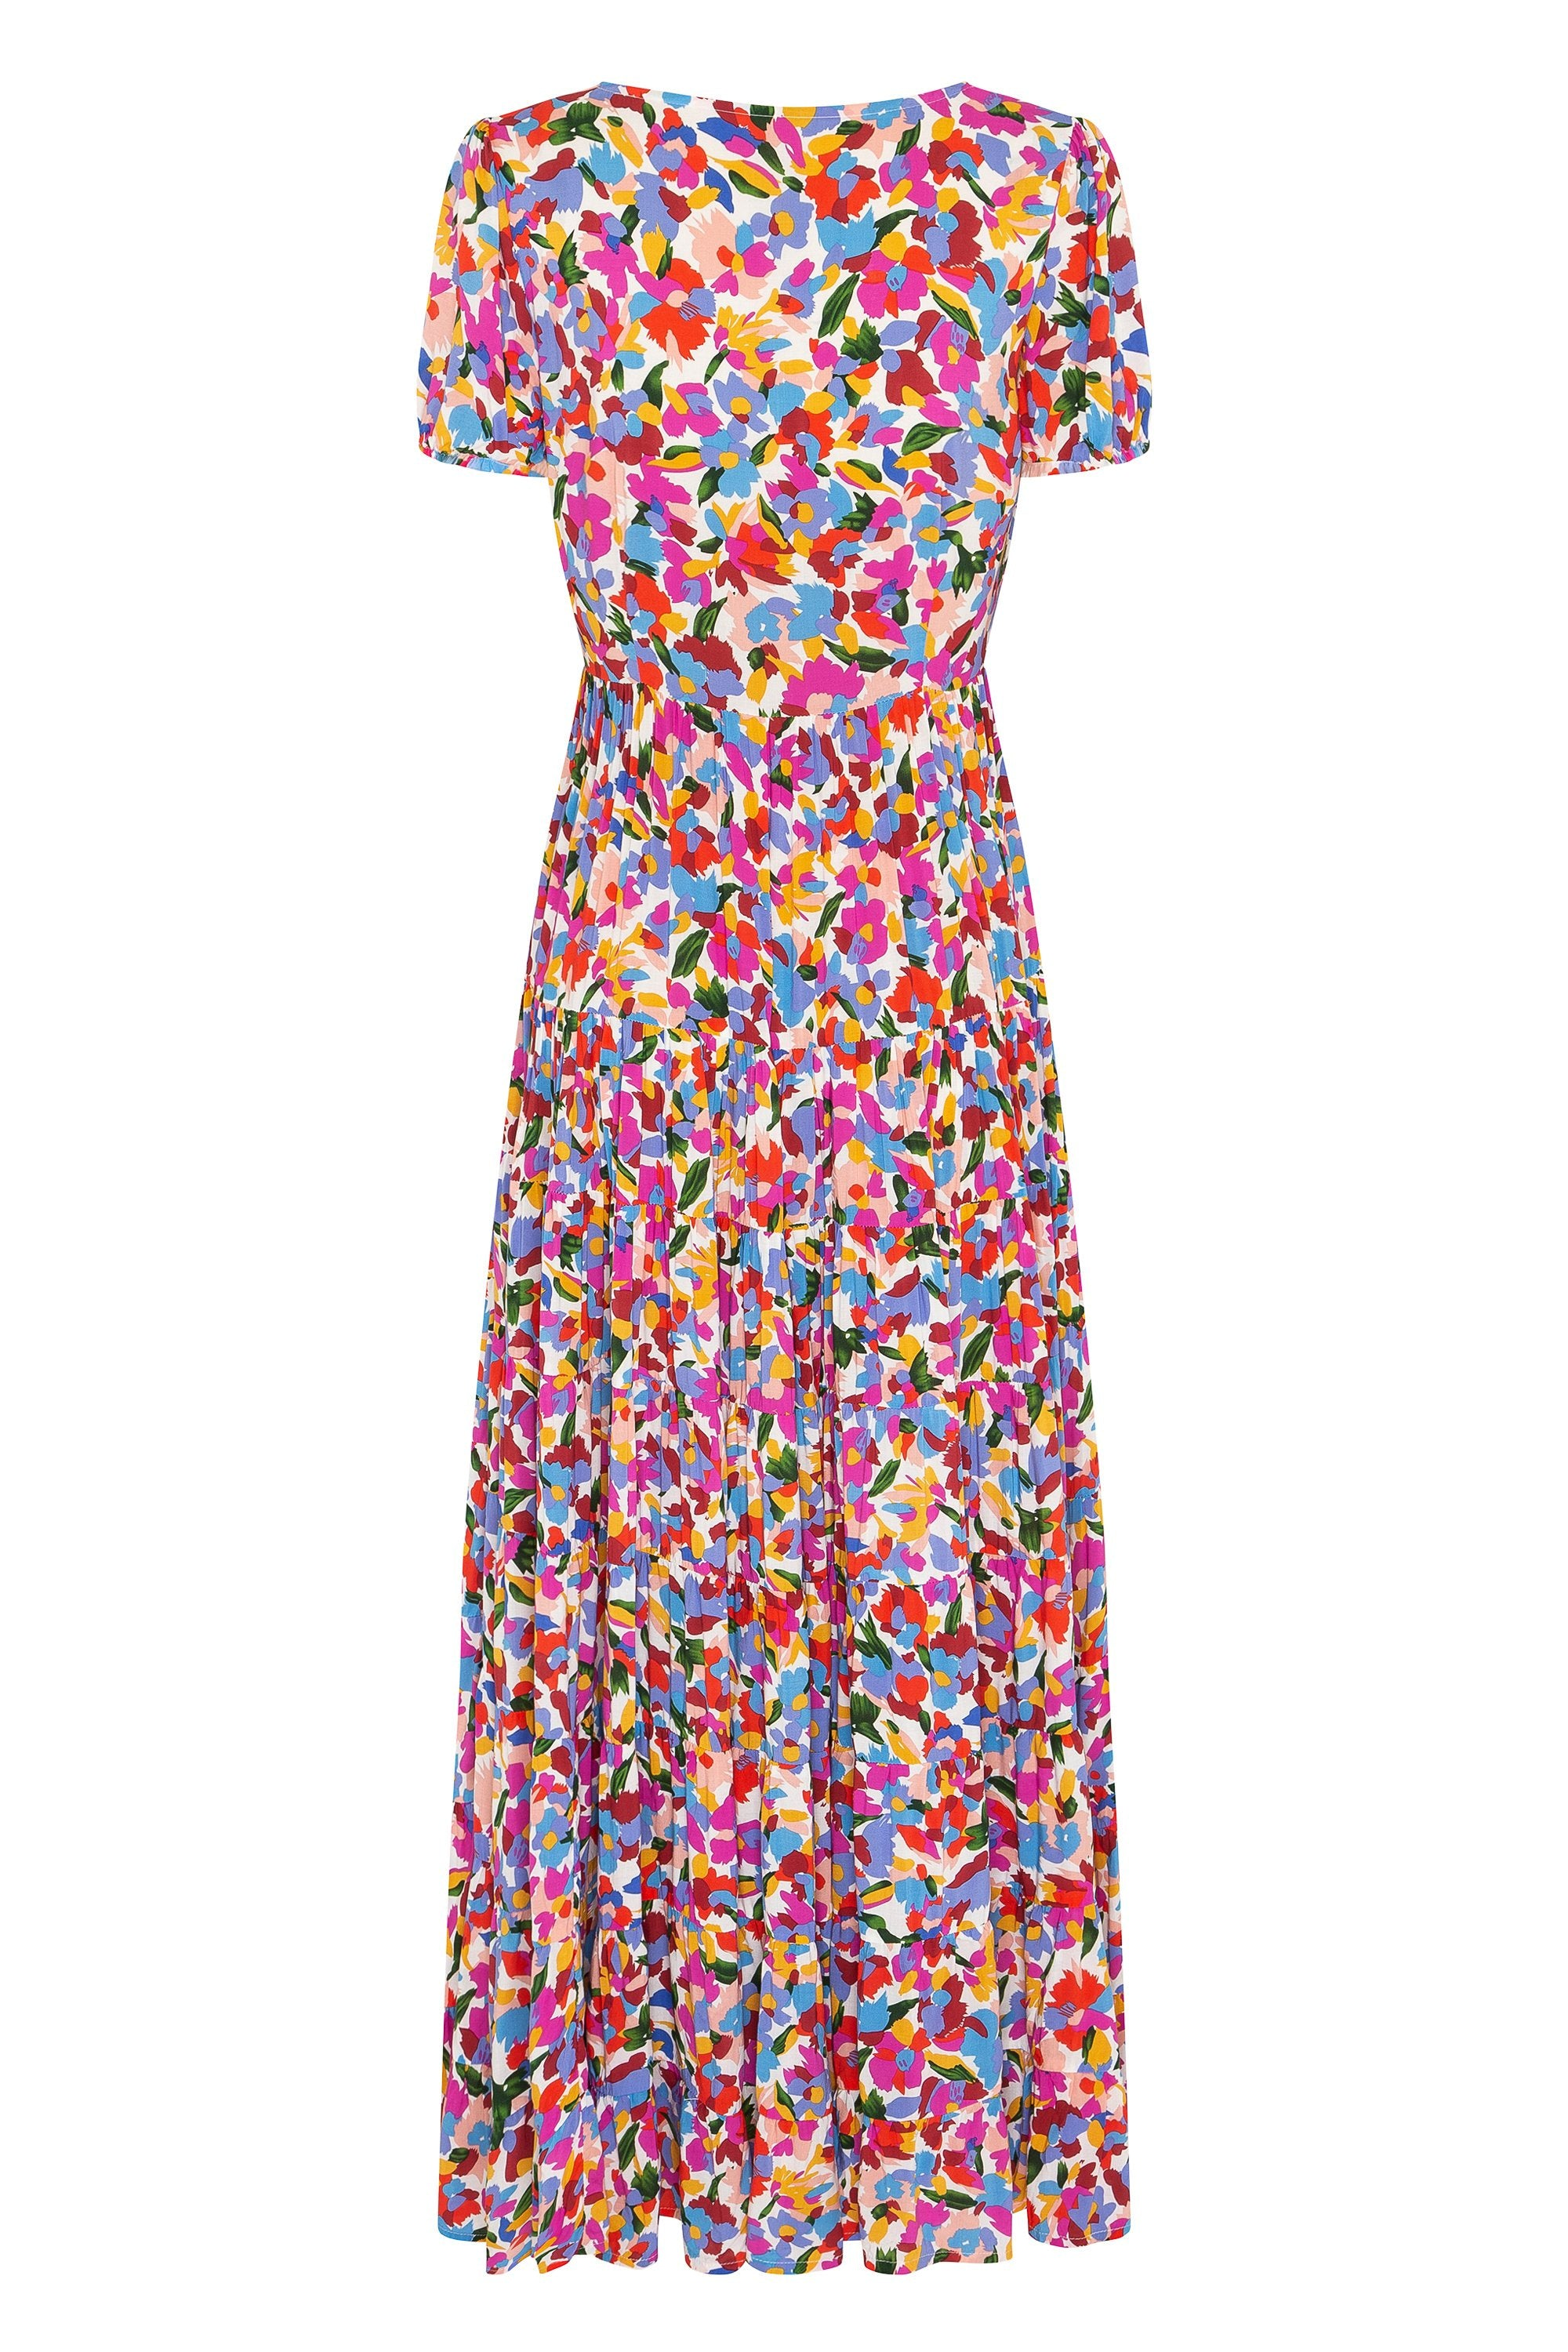 Roos Maxi Dress In Fleur